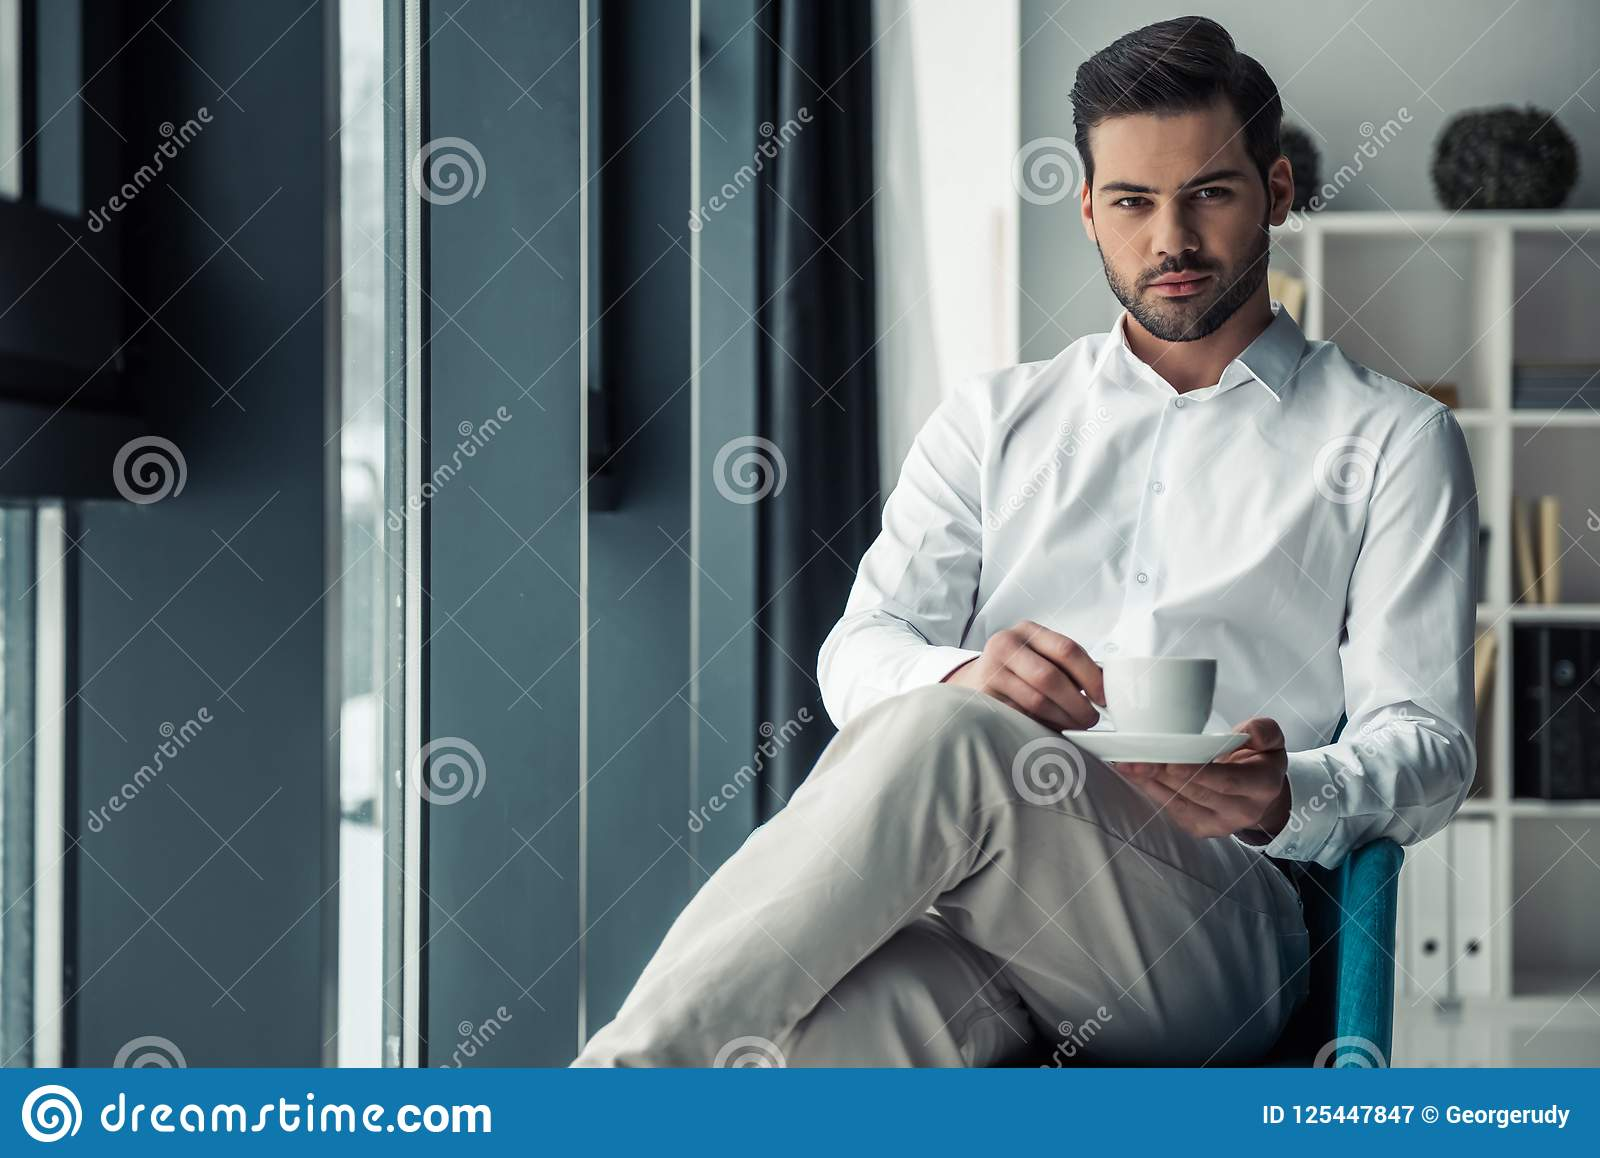 Download Handsome Businessman In Office Stock Image - Image of person, handsome: 125447847